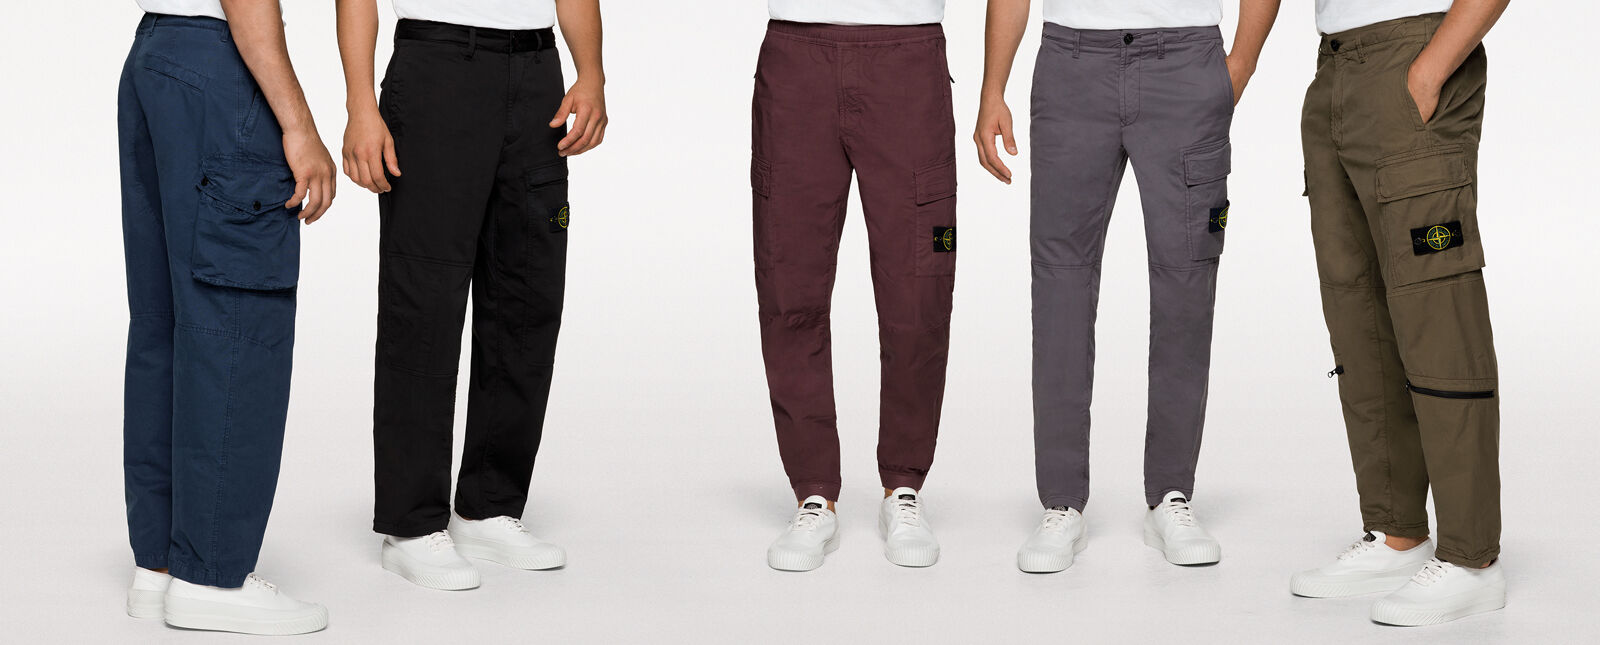 Close up shots of five models wearing white tops, white sneakers and different styles cargo pants in blue, black, burgundy, gray and military green.